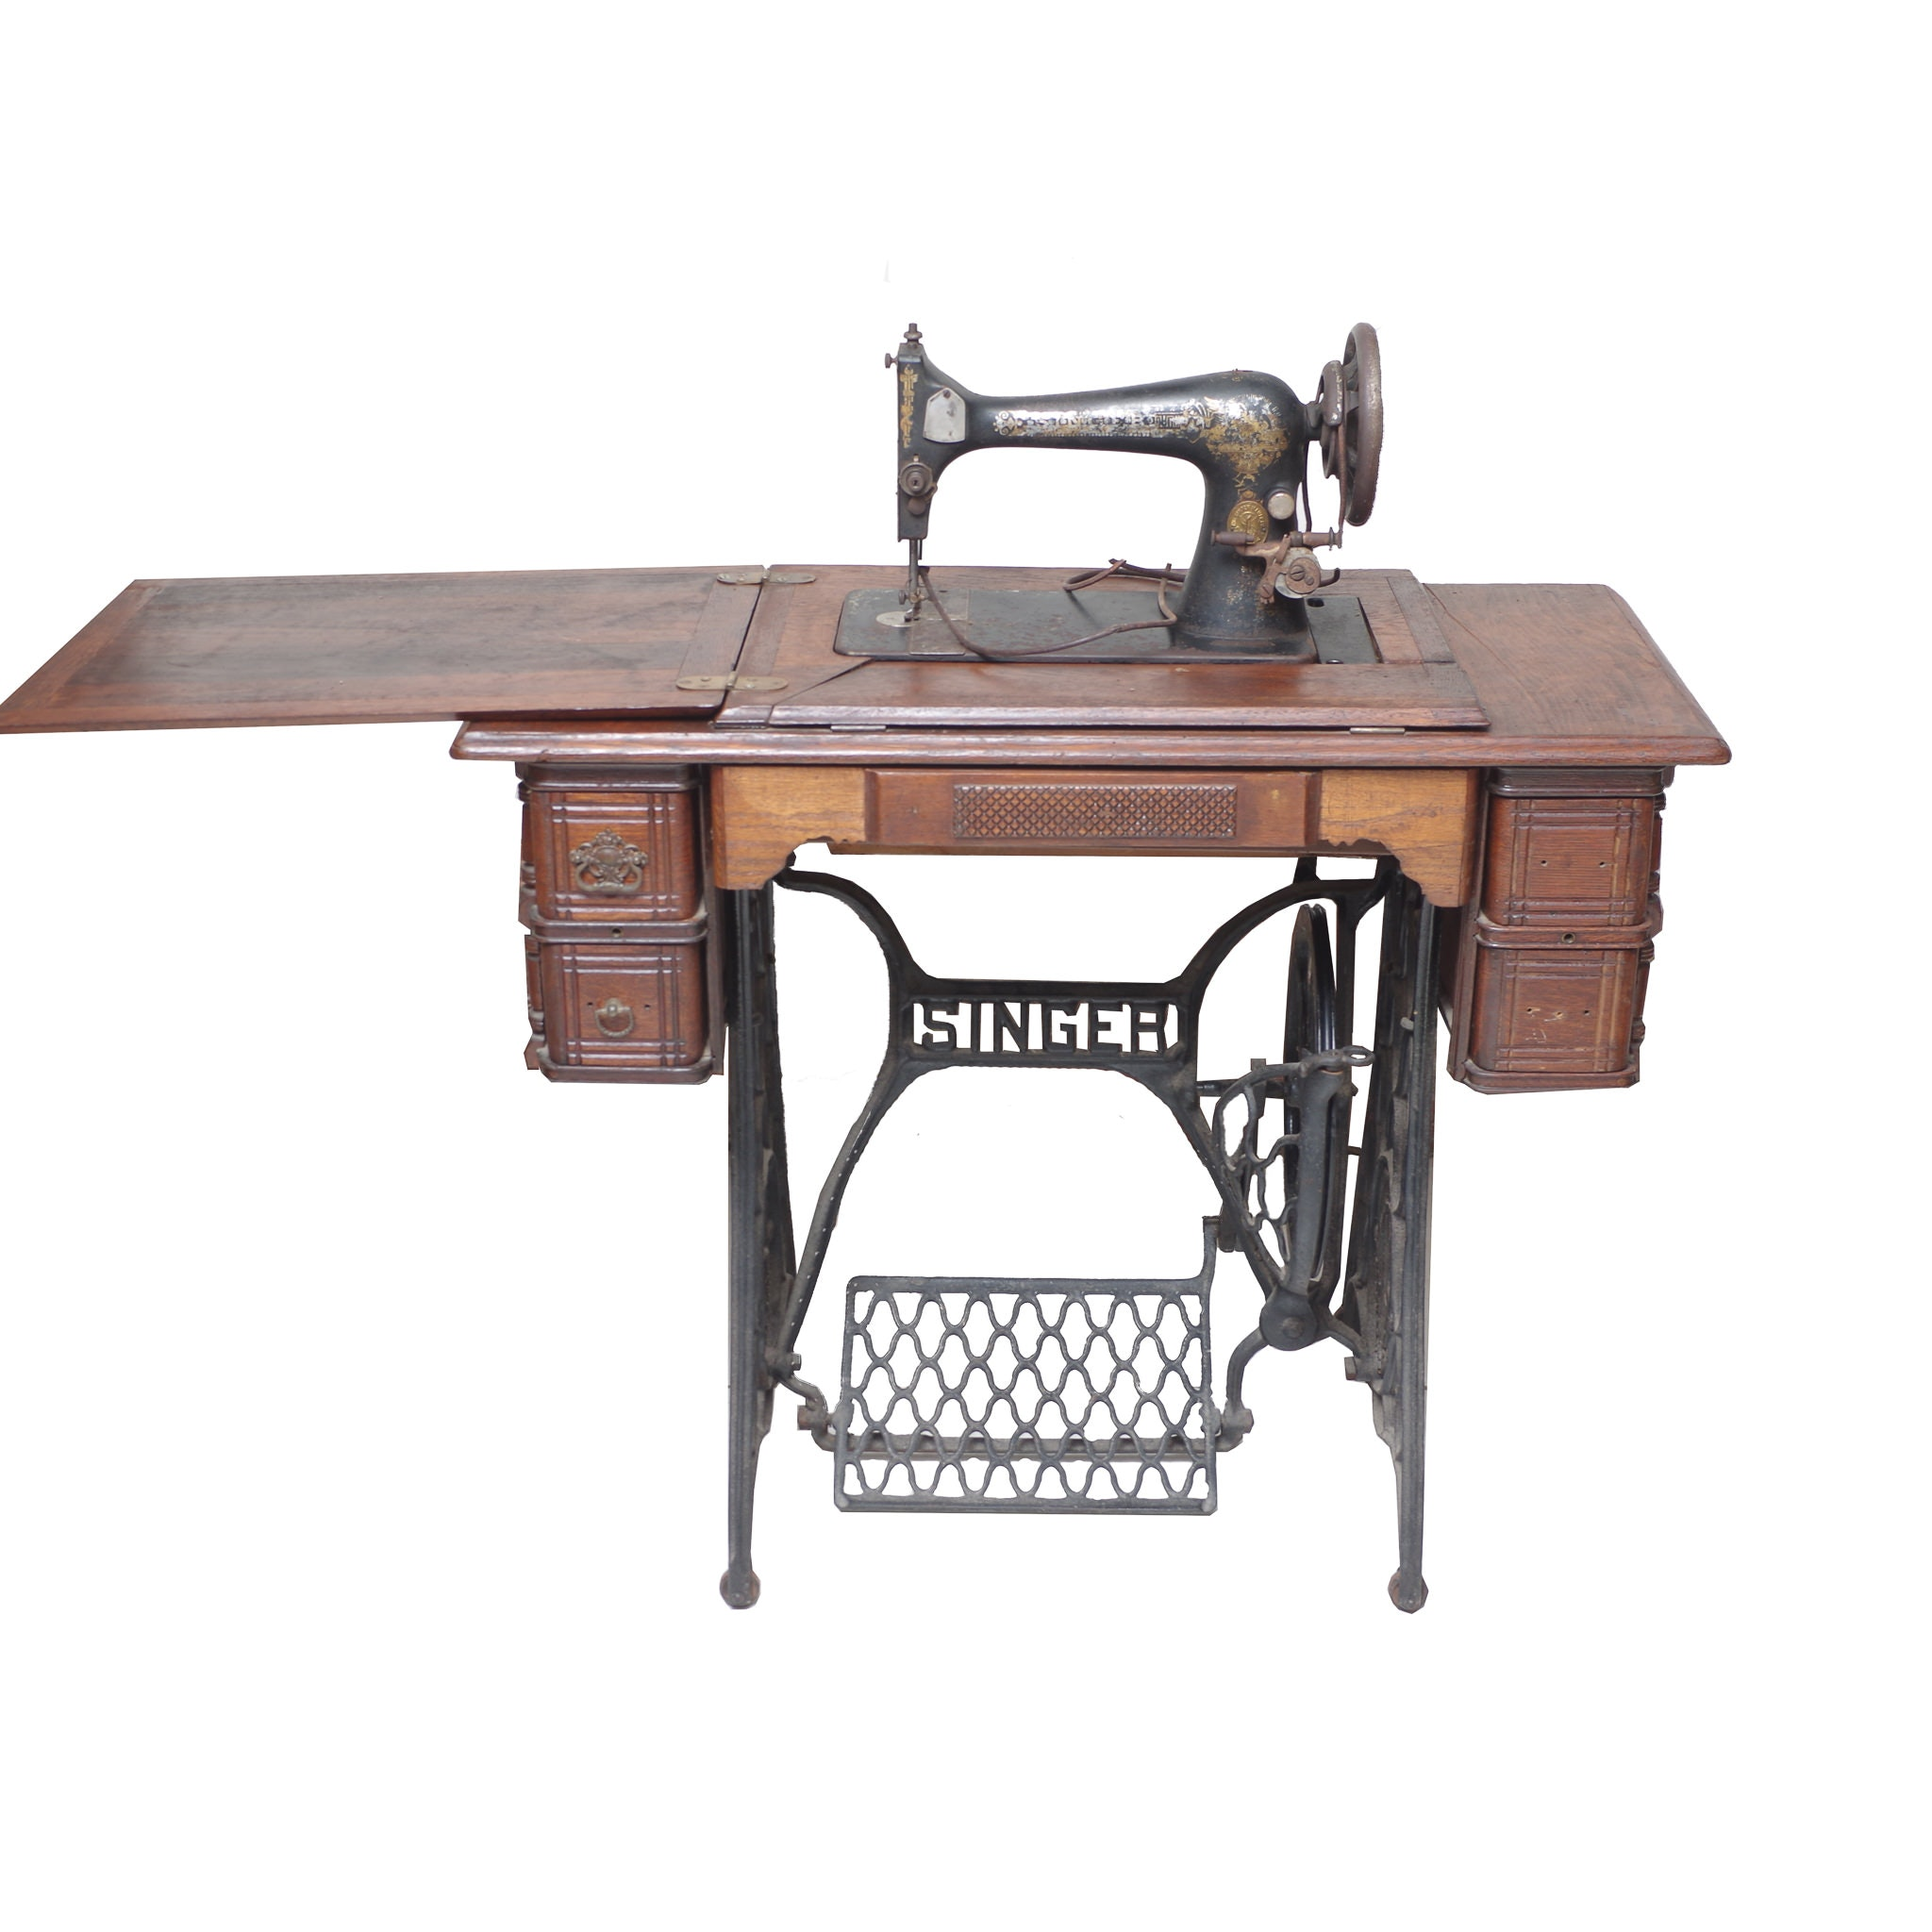 Singer Sewing Machine Table In Cast Iron Base ...